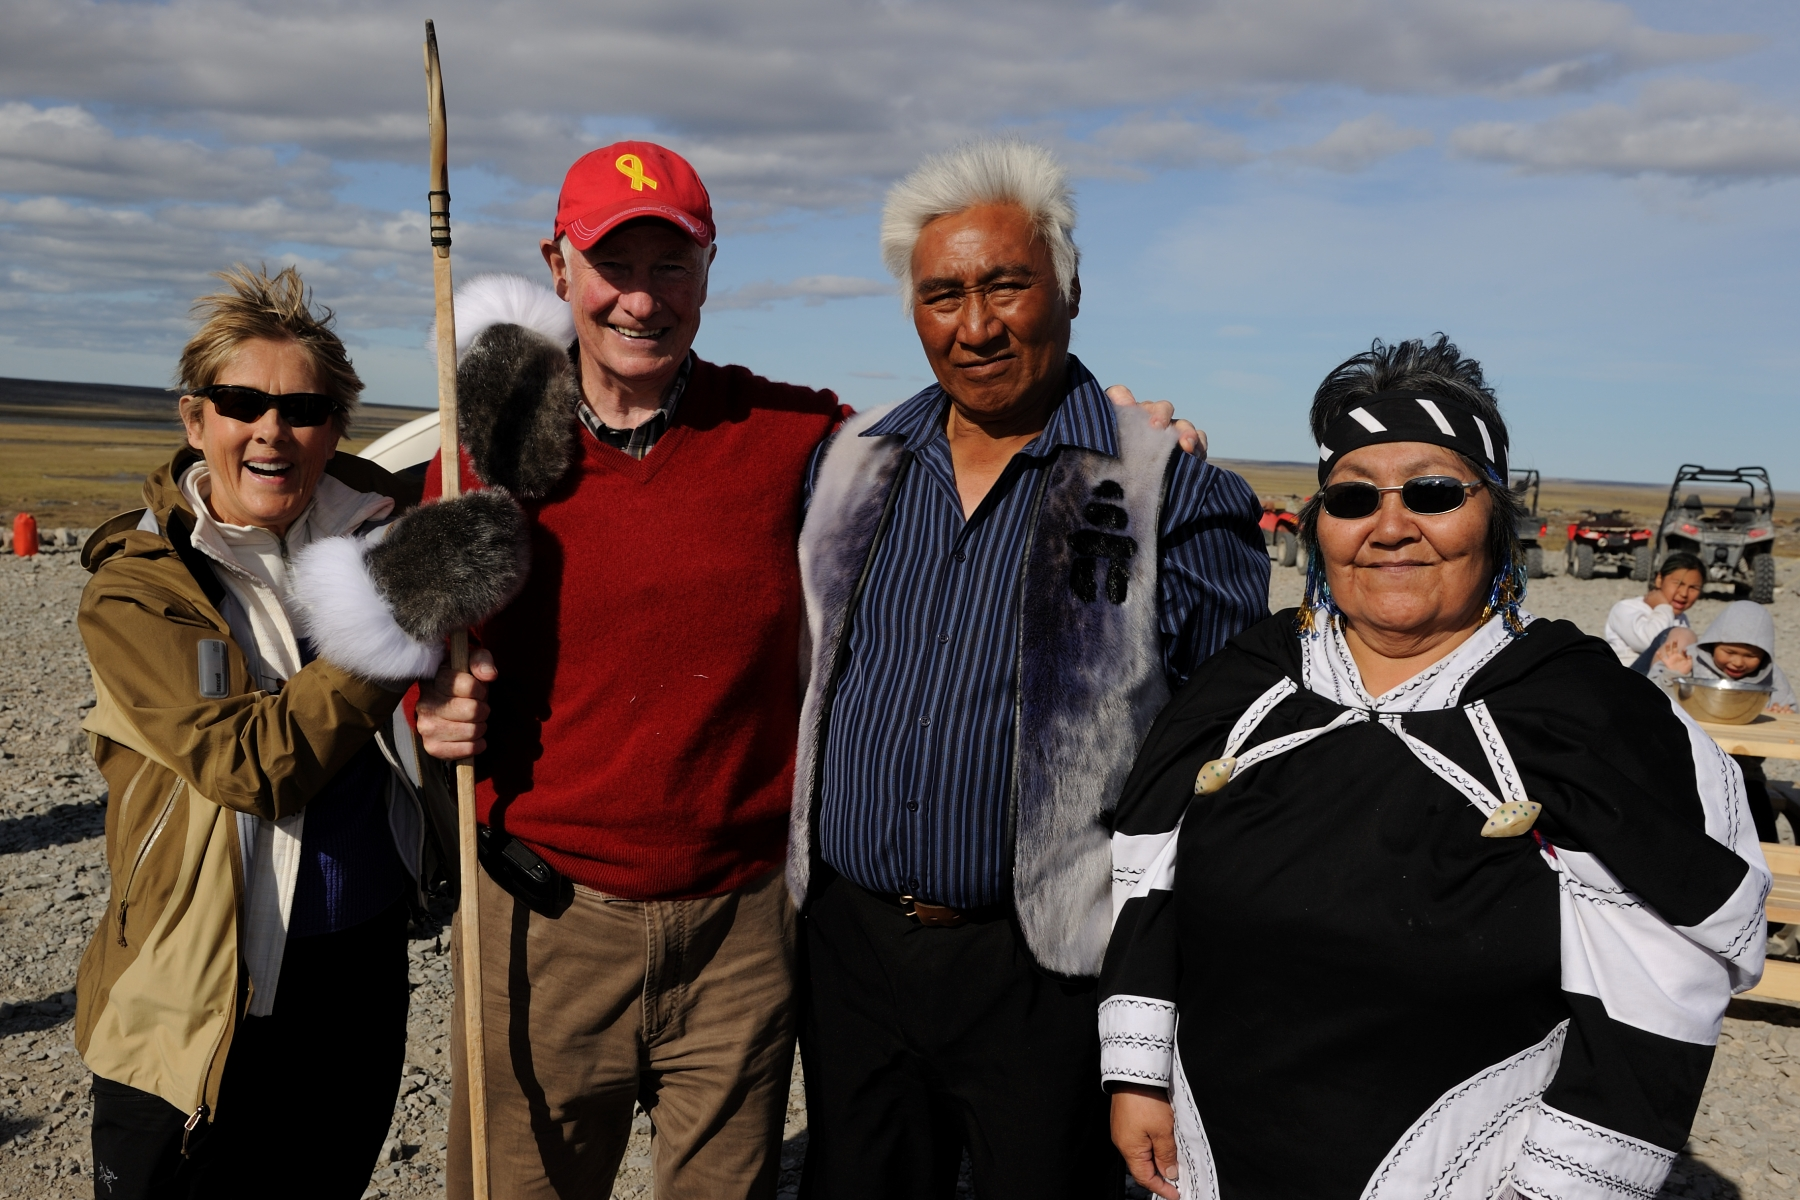 Their Excellencies were joined by His Worship Makabe Nartok, Mayor of Kugaaruk, and his spouse, Mrs. Nartok.